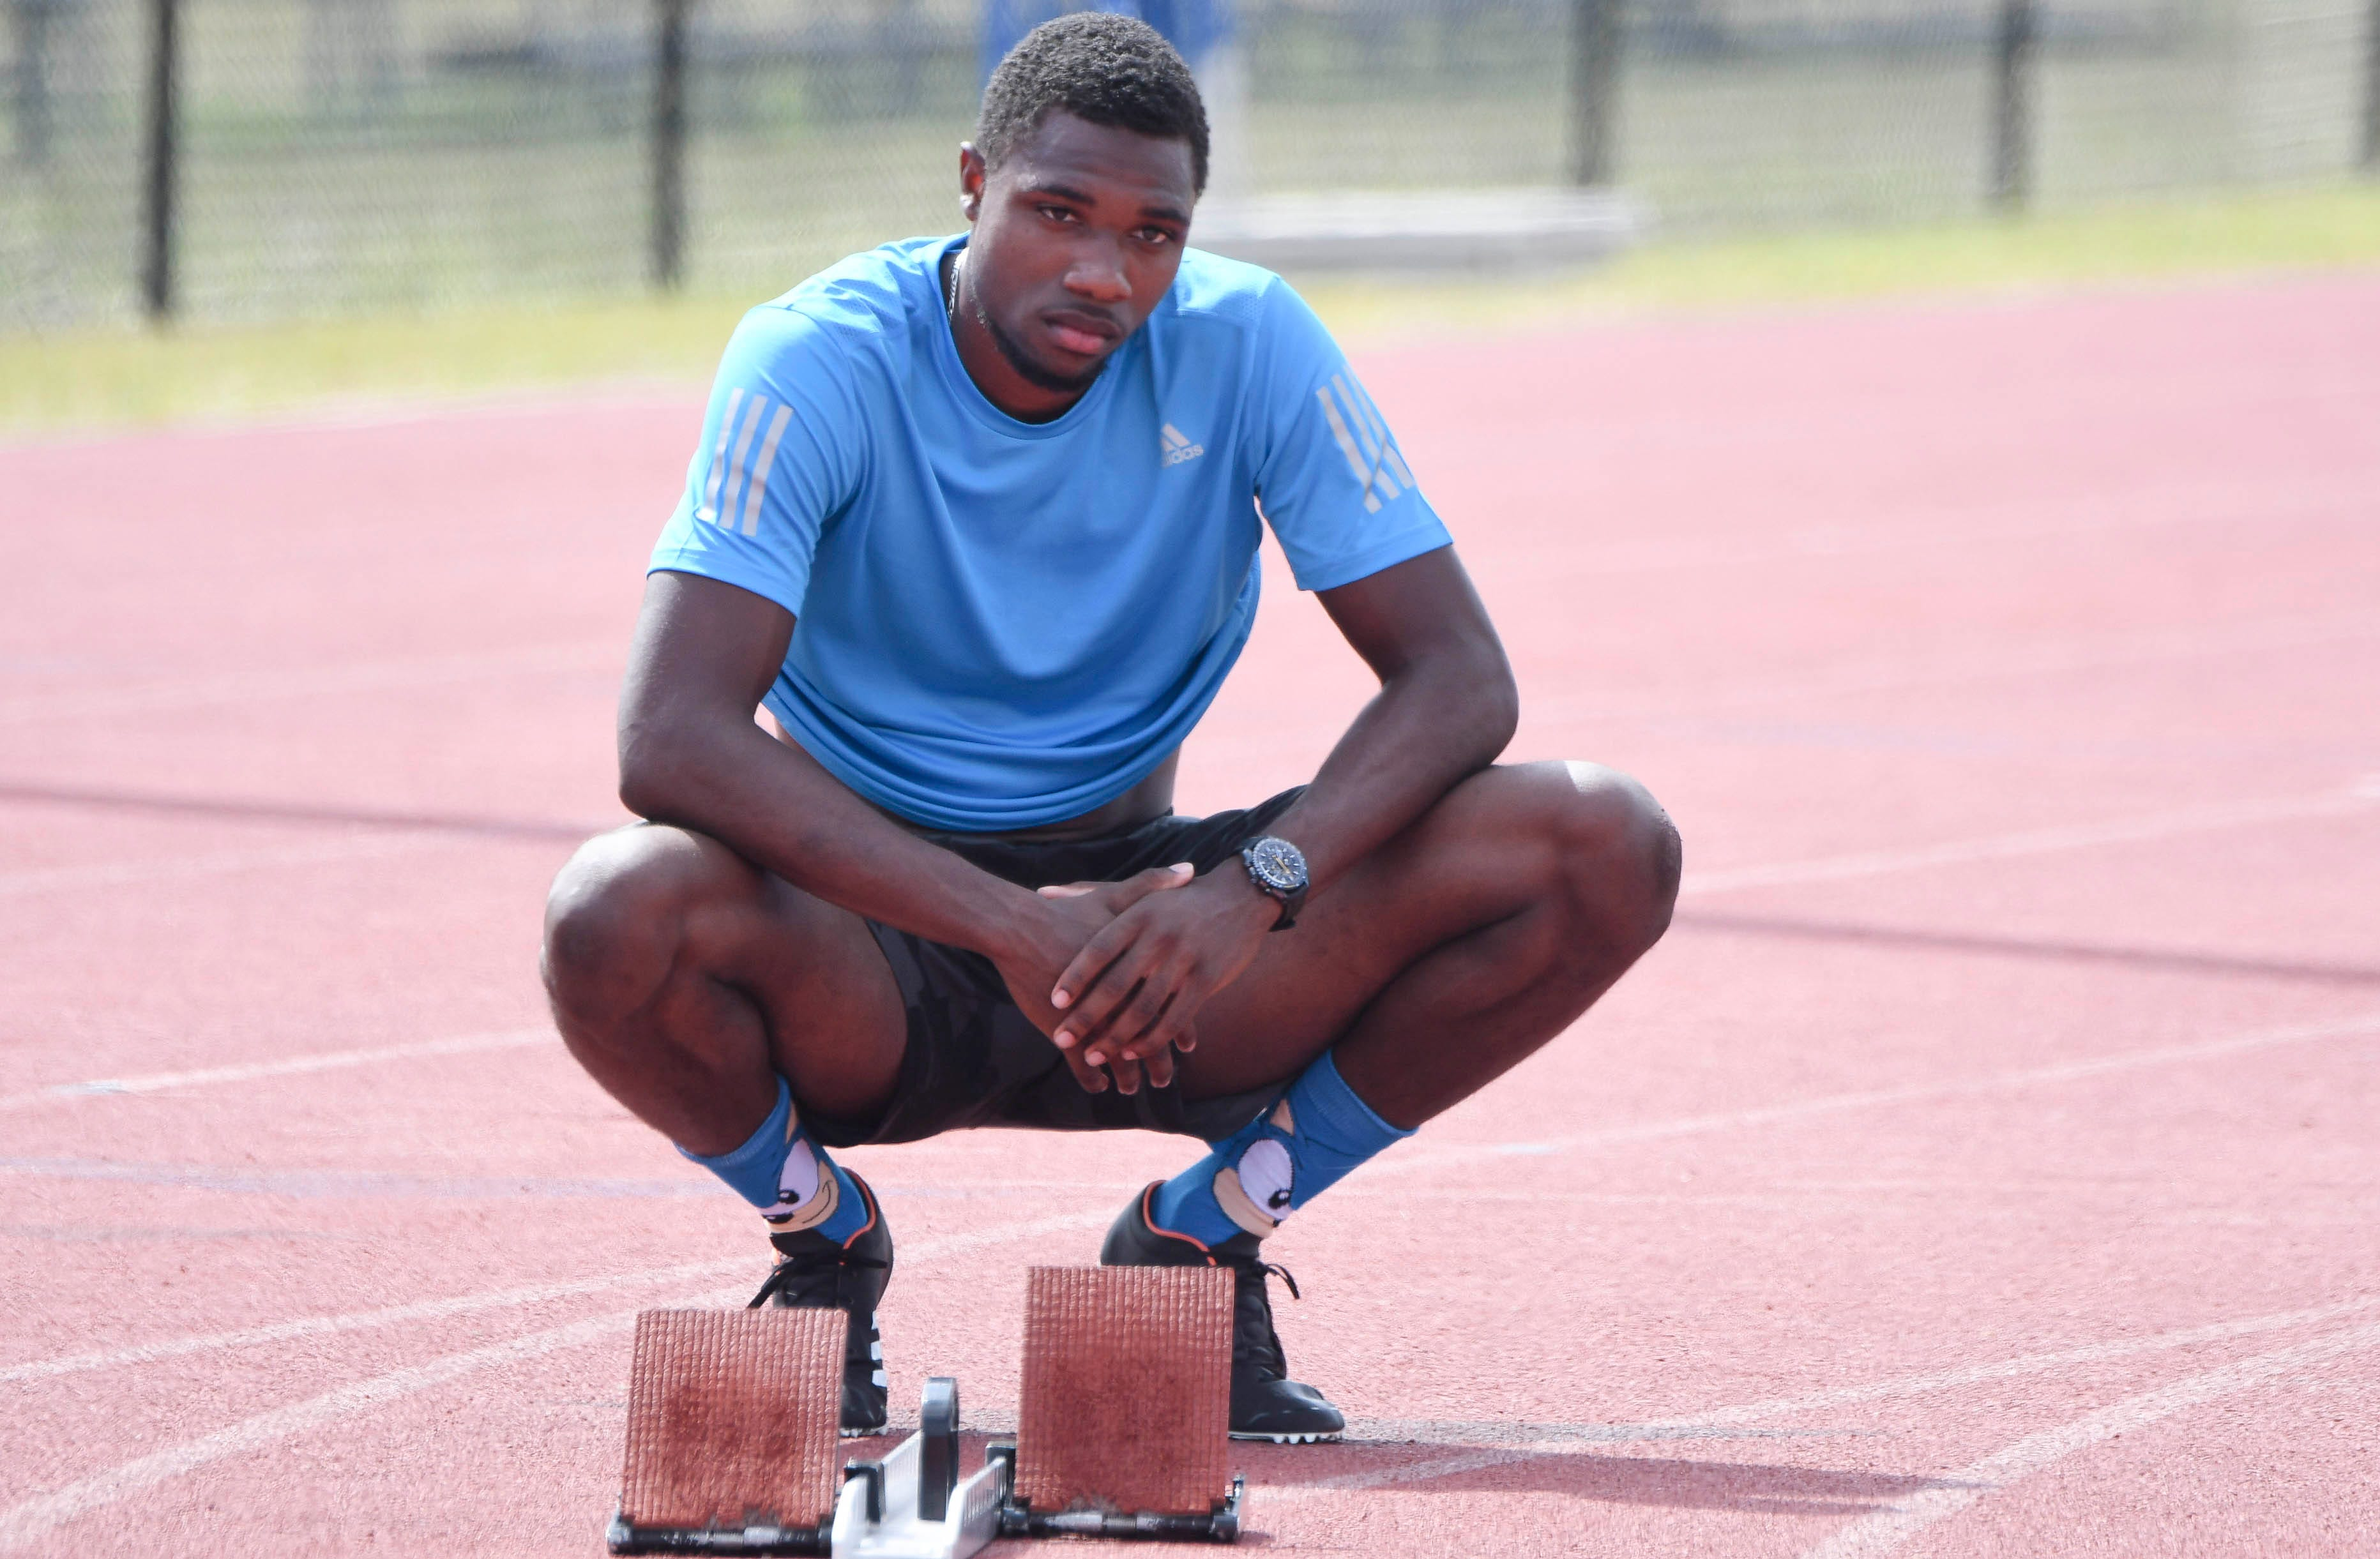 The 21-year-old Noah Lyles could be a breakout star at next summer's Olympics.